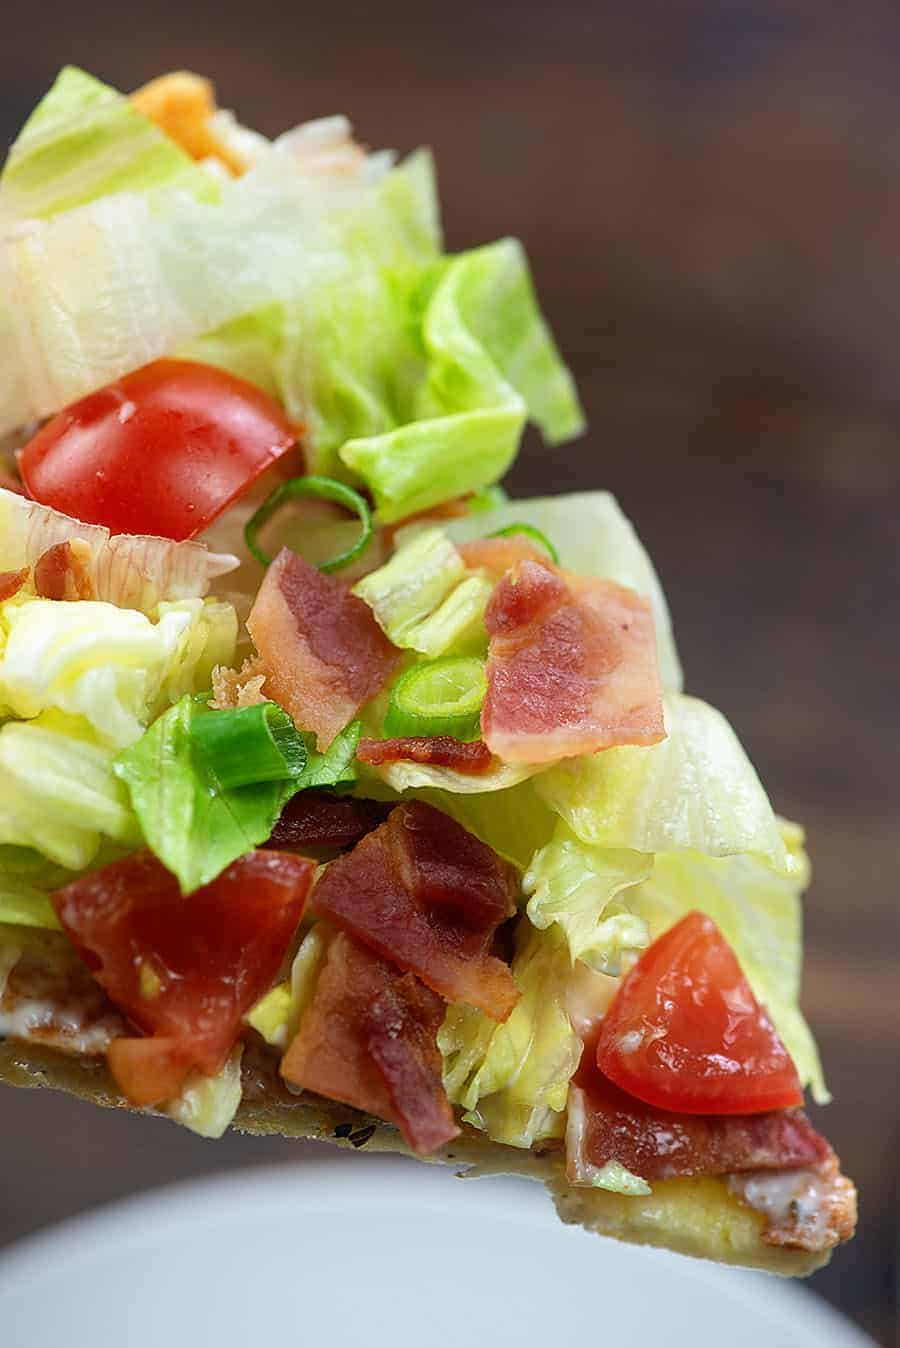 Low carb BLT pizza with crispy, chewy fathead dough! #lowcarb #keto #pizza